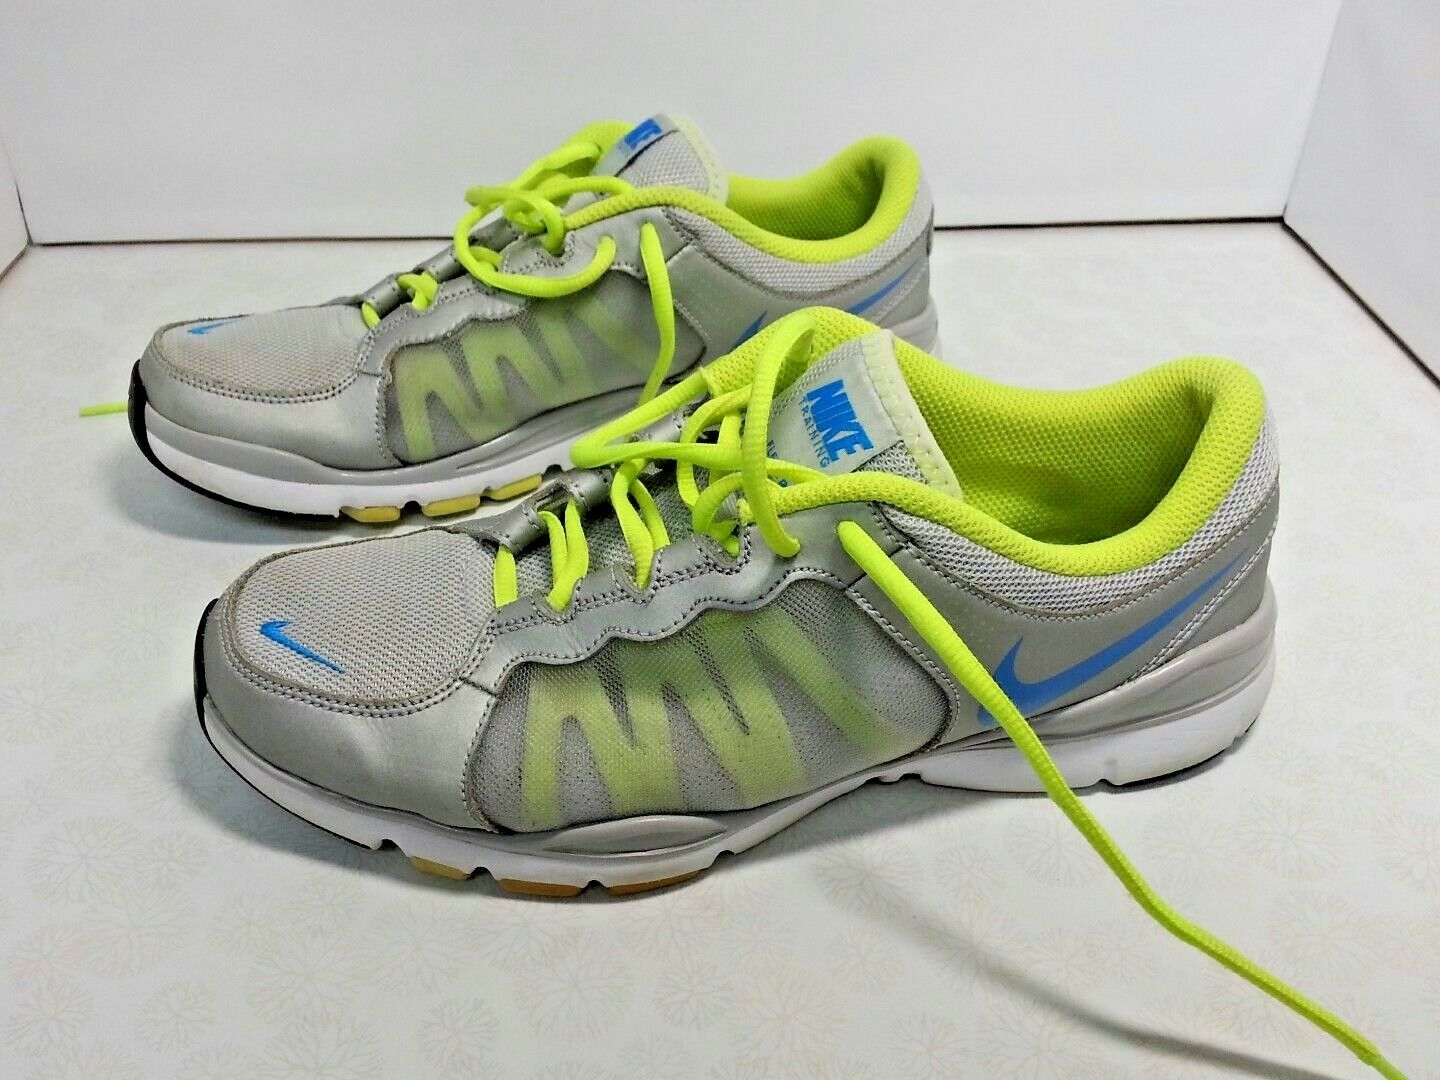 info for 2a98e 28f7a Nike Nike Nike Womens Flex TR2 Shoes Size 9 Two Tone Silver Grey Volt Color  Good